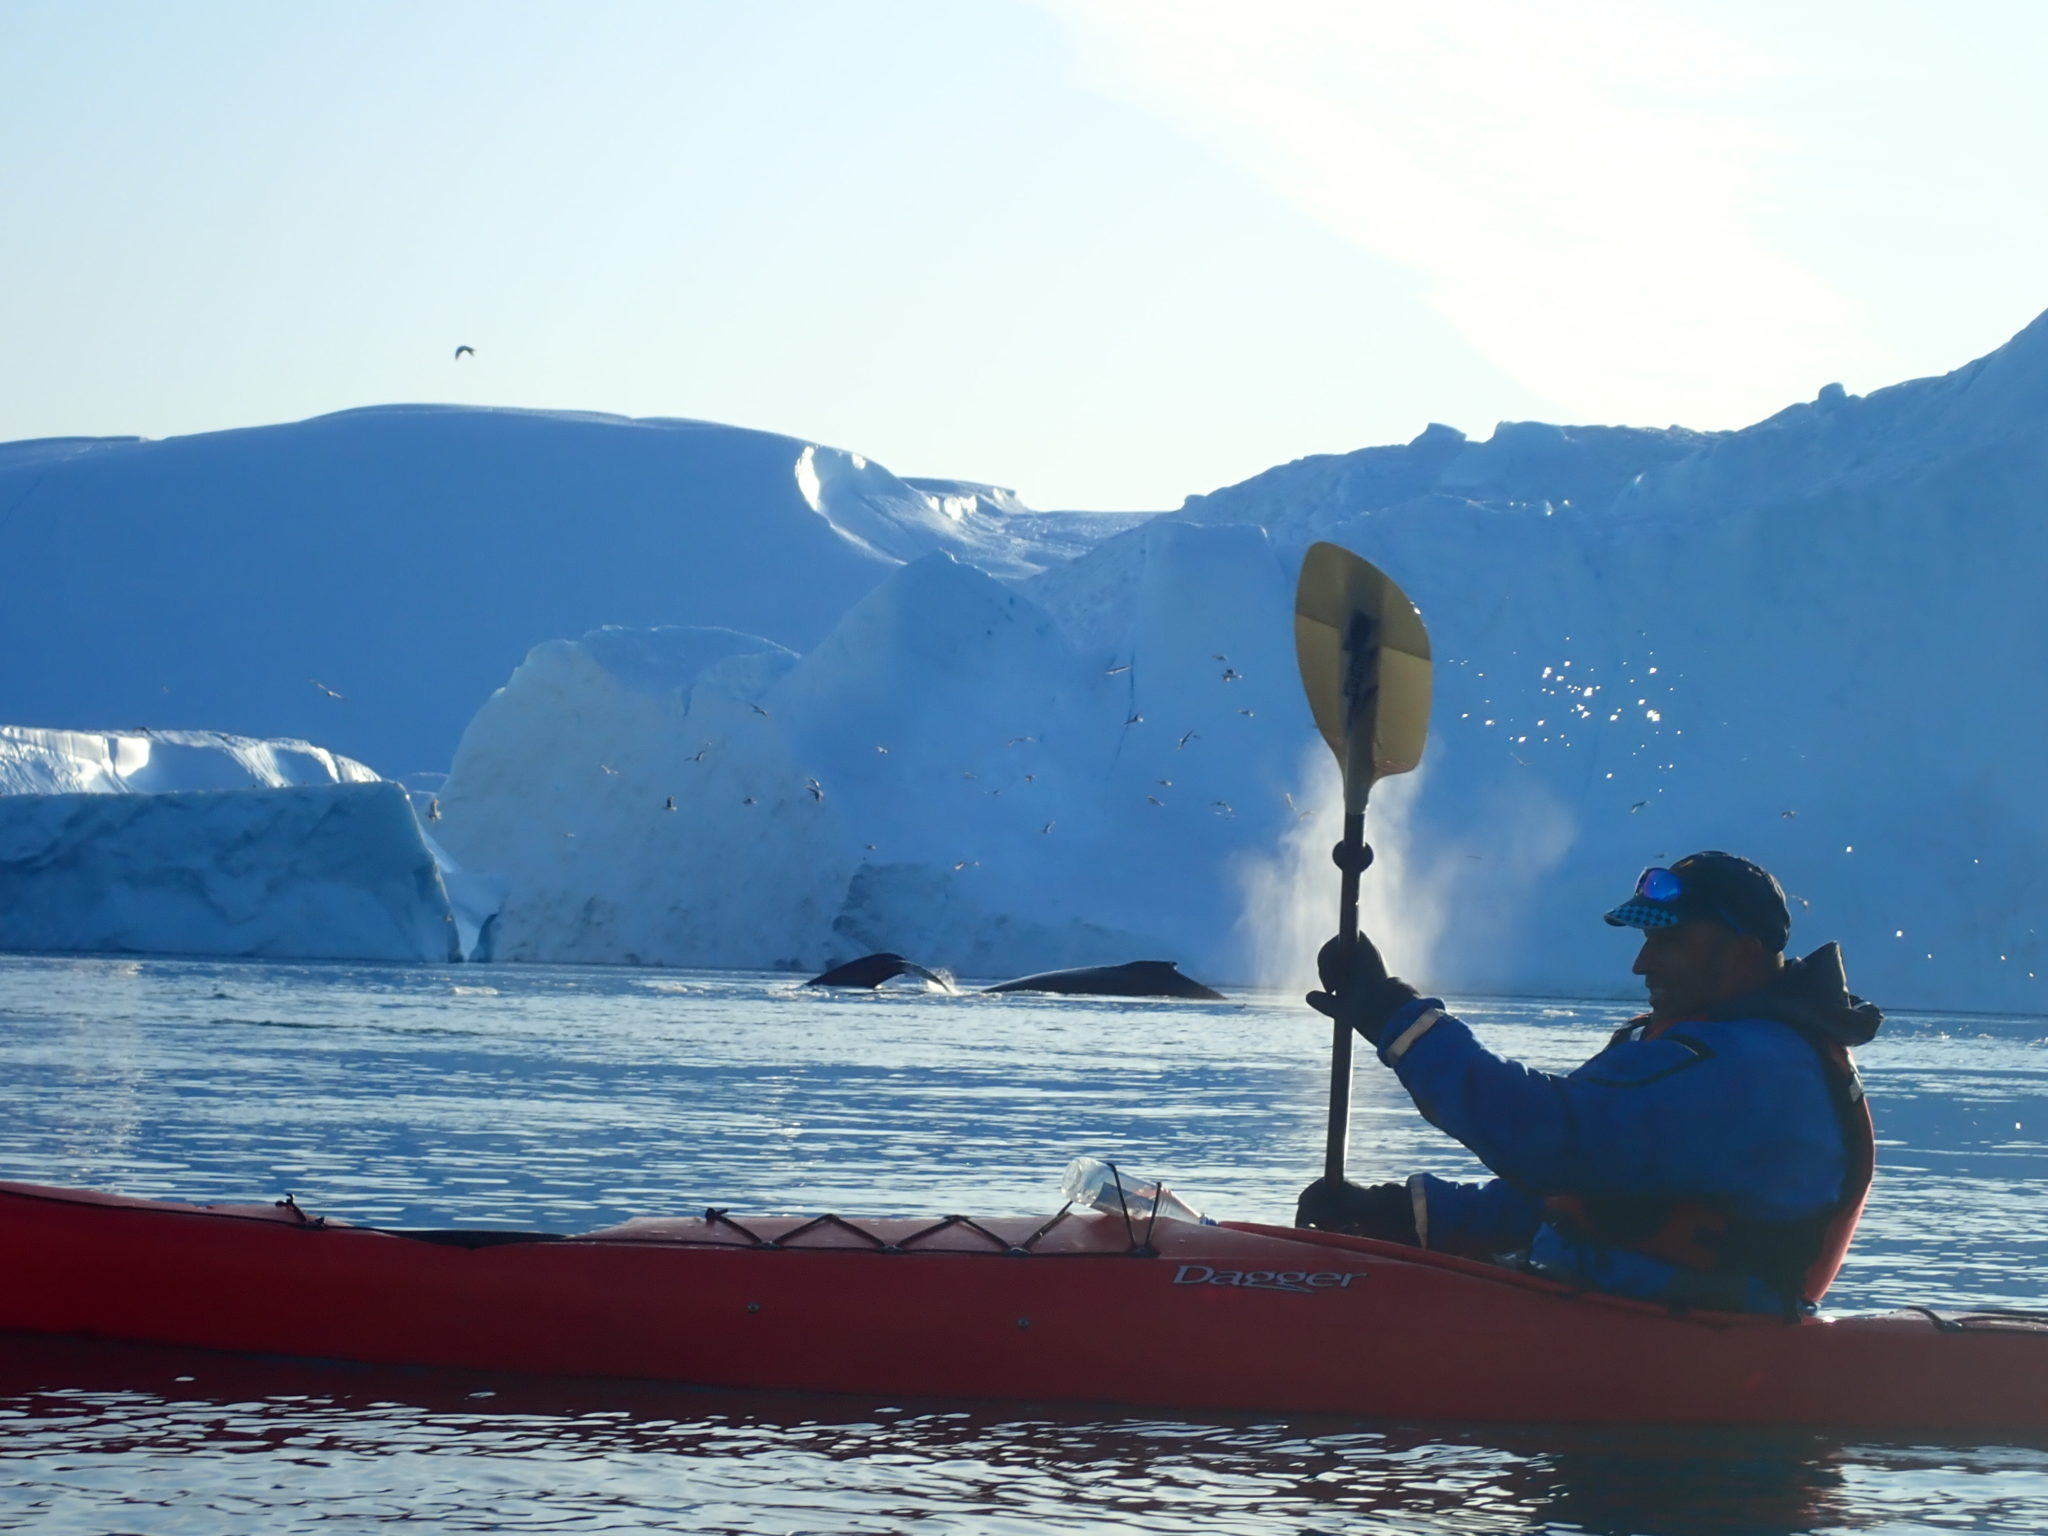 Evening Greenland kayaking experience in Ilulissat icefjord